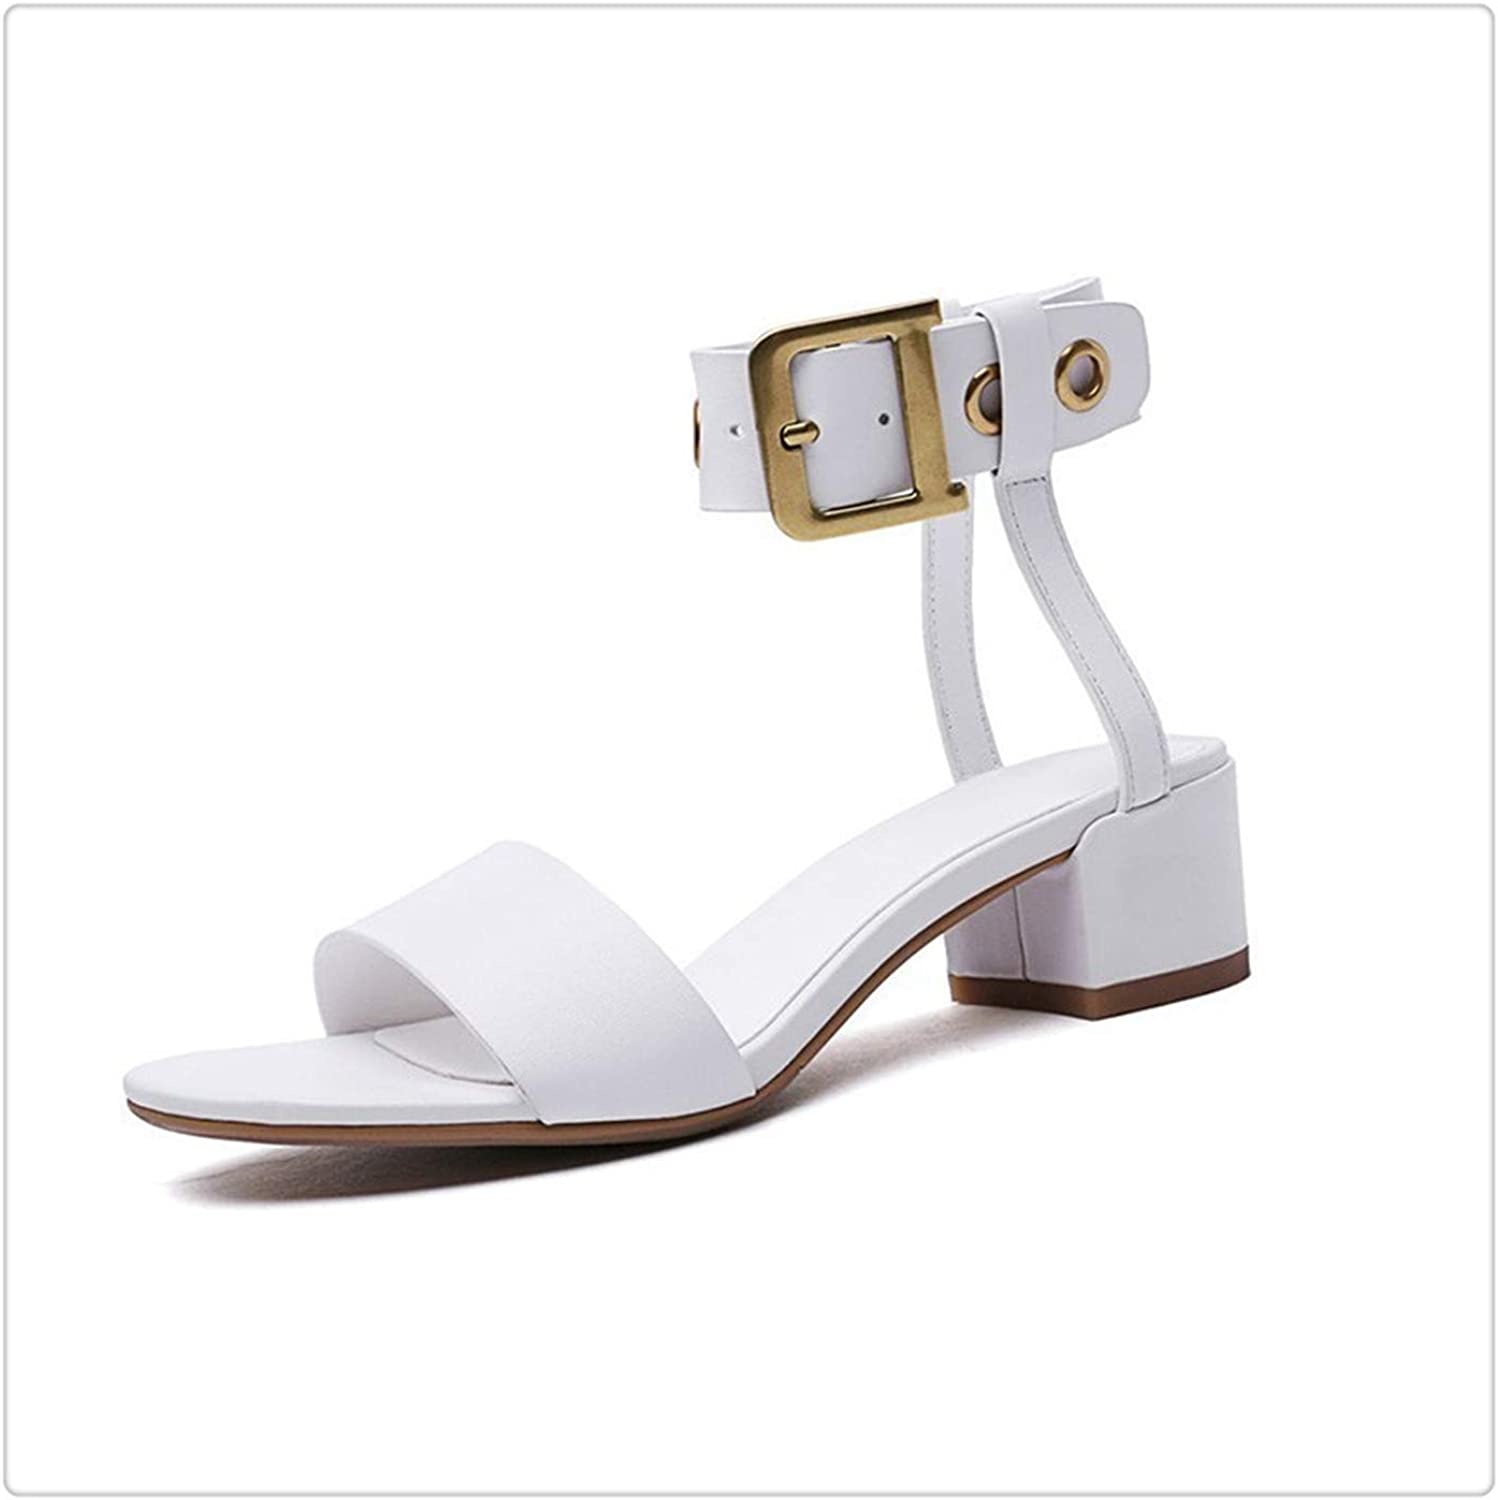 BIONGTY& 2019 New Spring Summer Round Toe Pu Leather Belt Buckle Strap Casual SimpleHigh Heels Sandals Women Fashion Tide 10SJ716 White 38